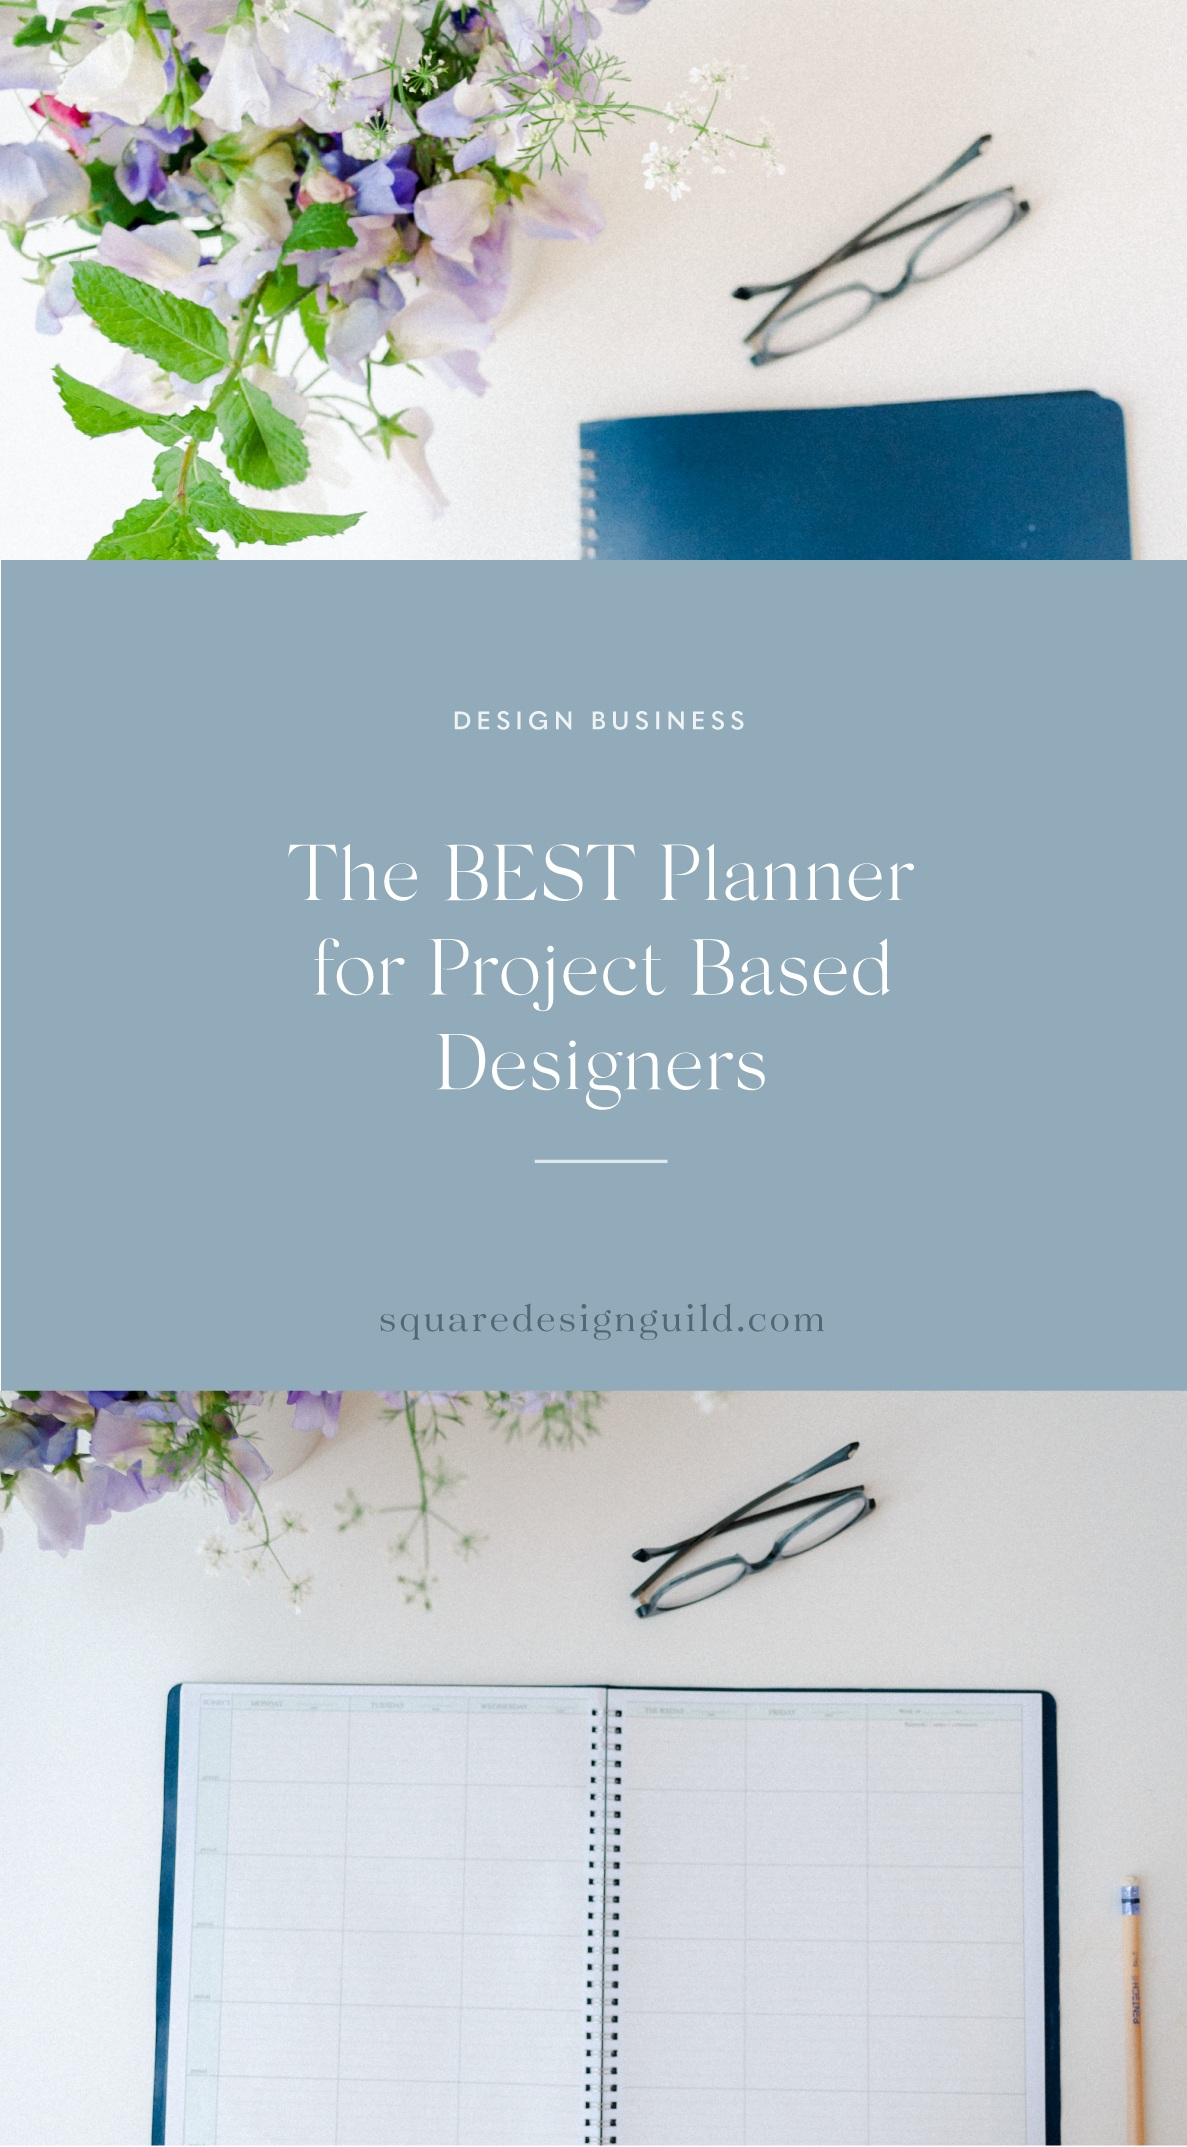 Planner+for+Designers